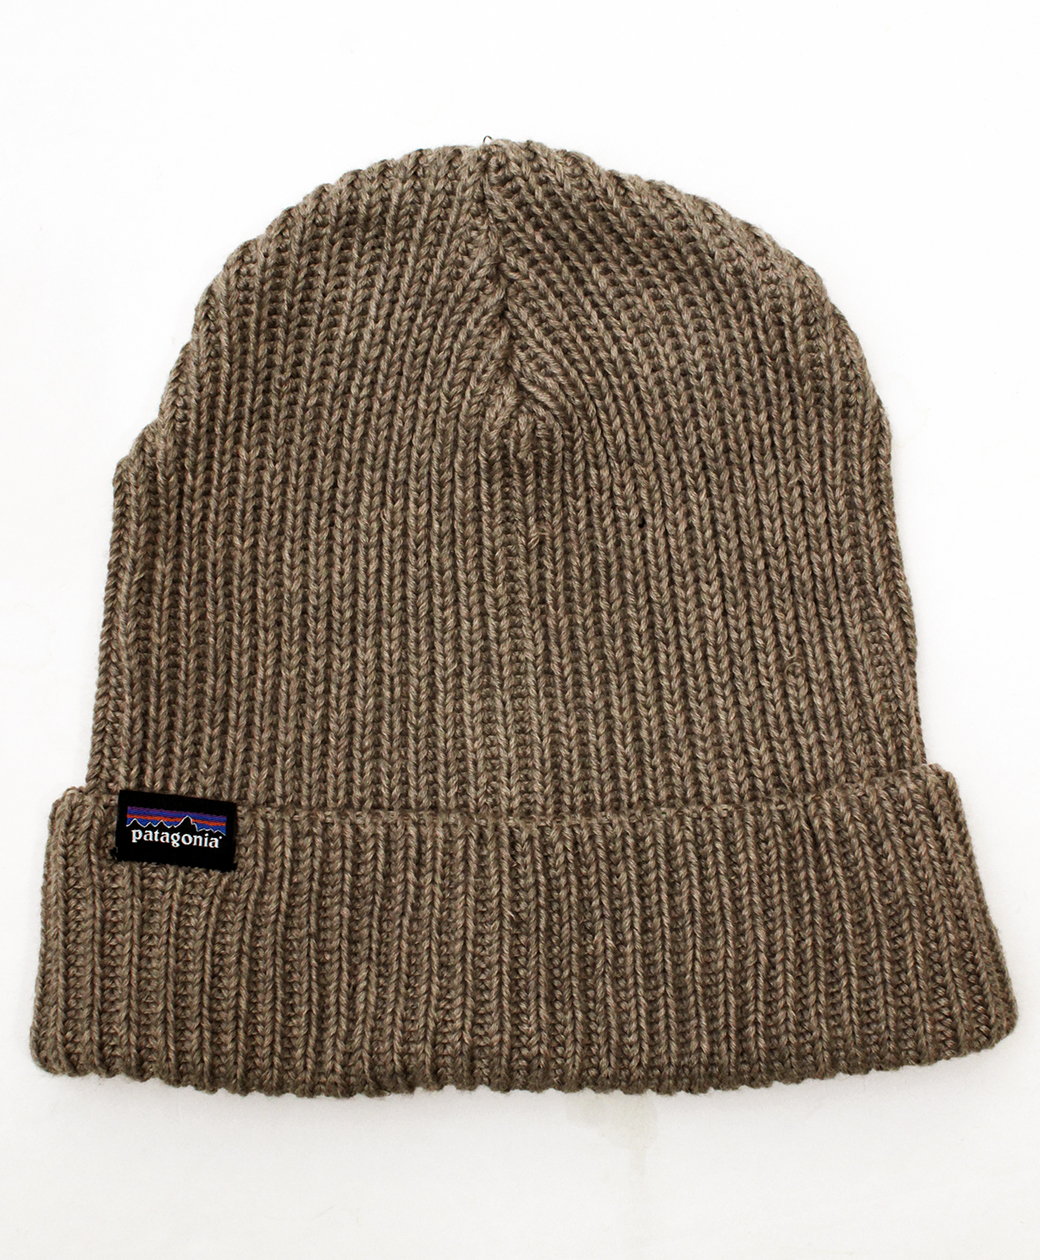 patagonia Fishermans Rolled Beanie(ASHT)